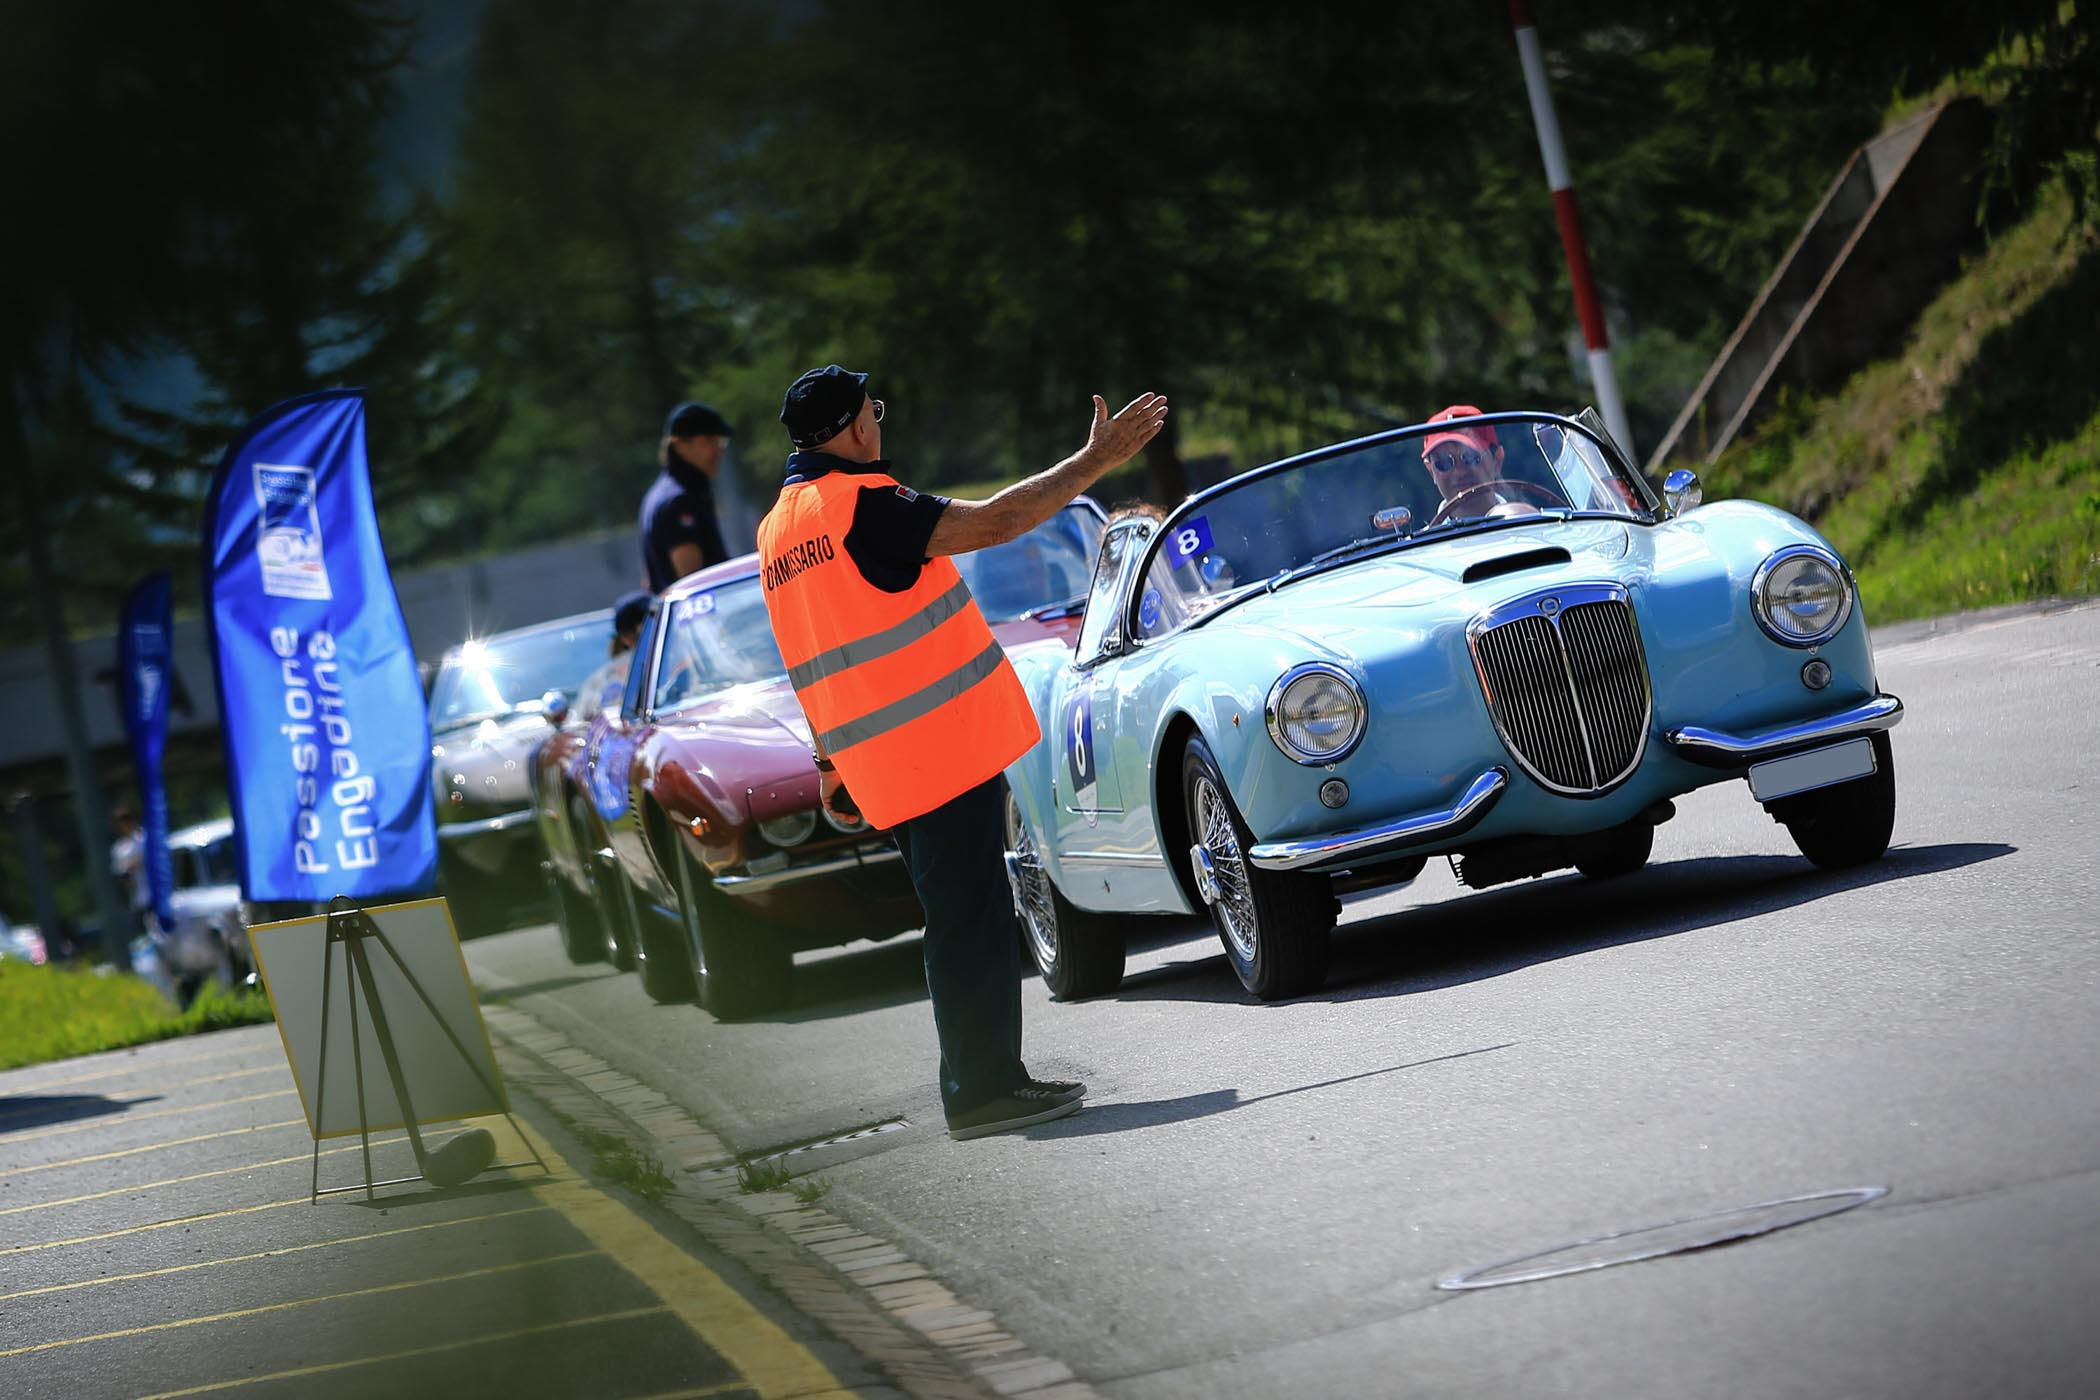 Event Report - Jaeger-LeCoultre at Classic Car Rally \